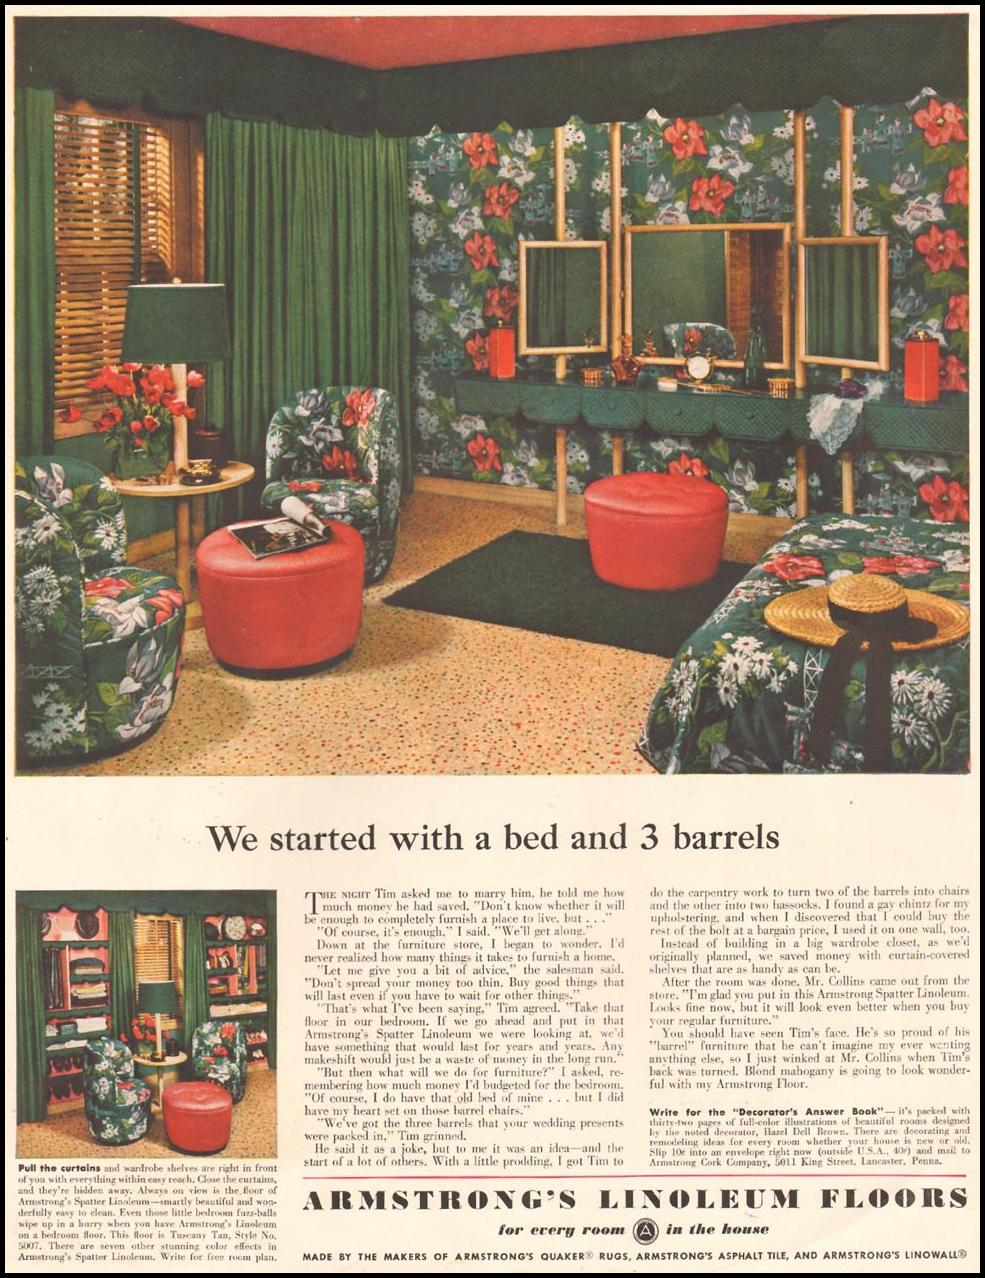 ARMSTRONG LINOLEUM FLOORS LADIES' HOME JOURNAL 11/01/1950 INSIDE FRONT